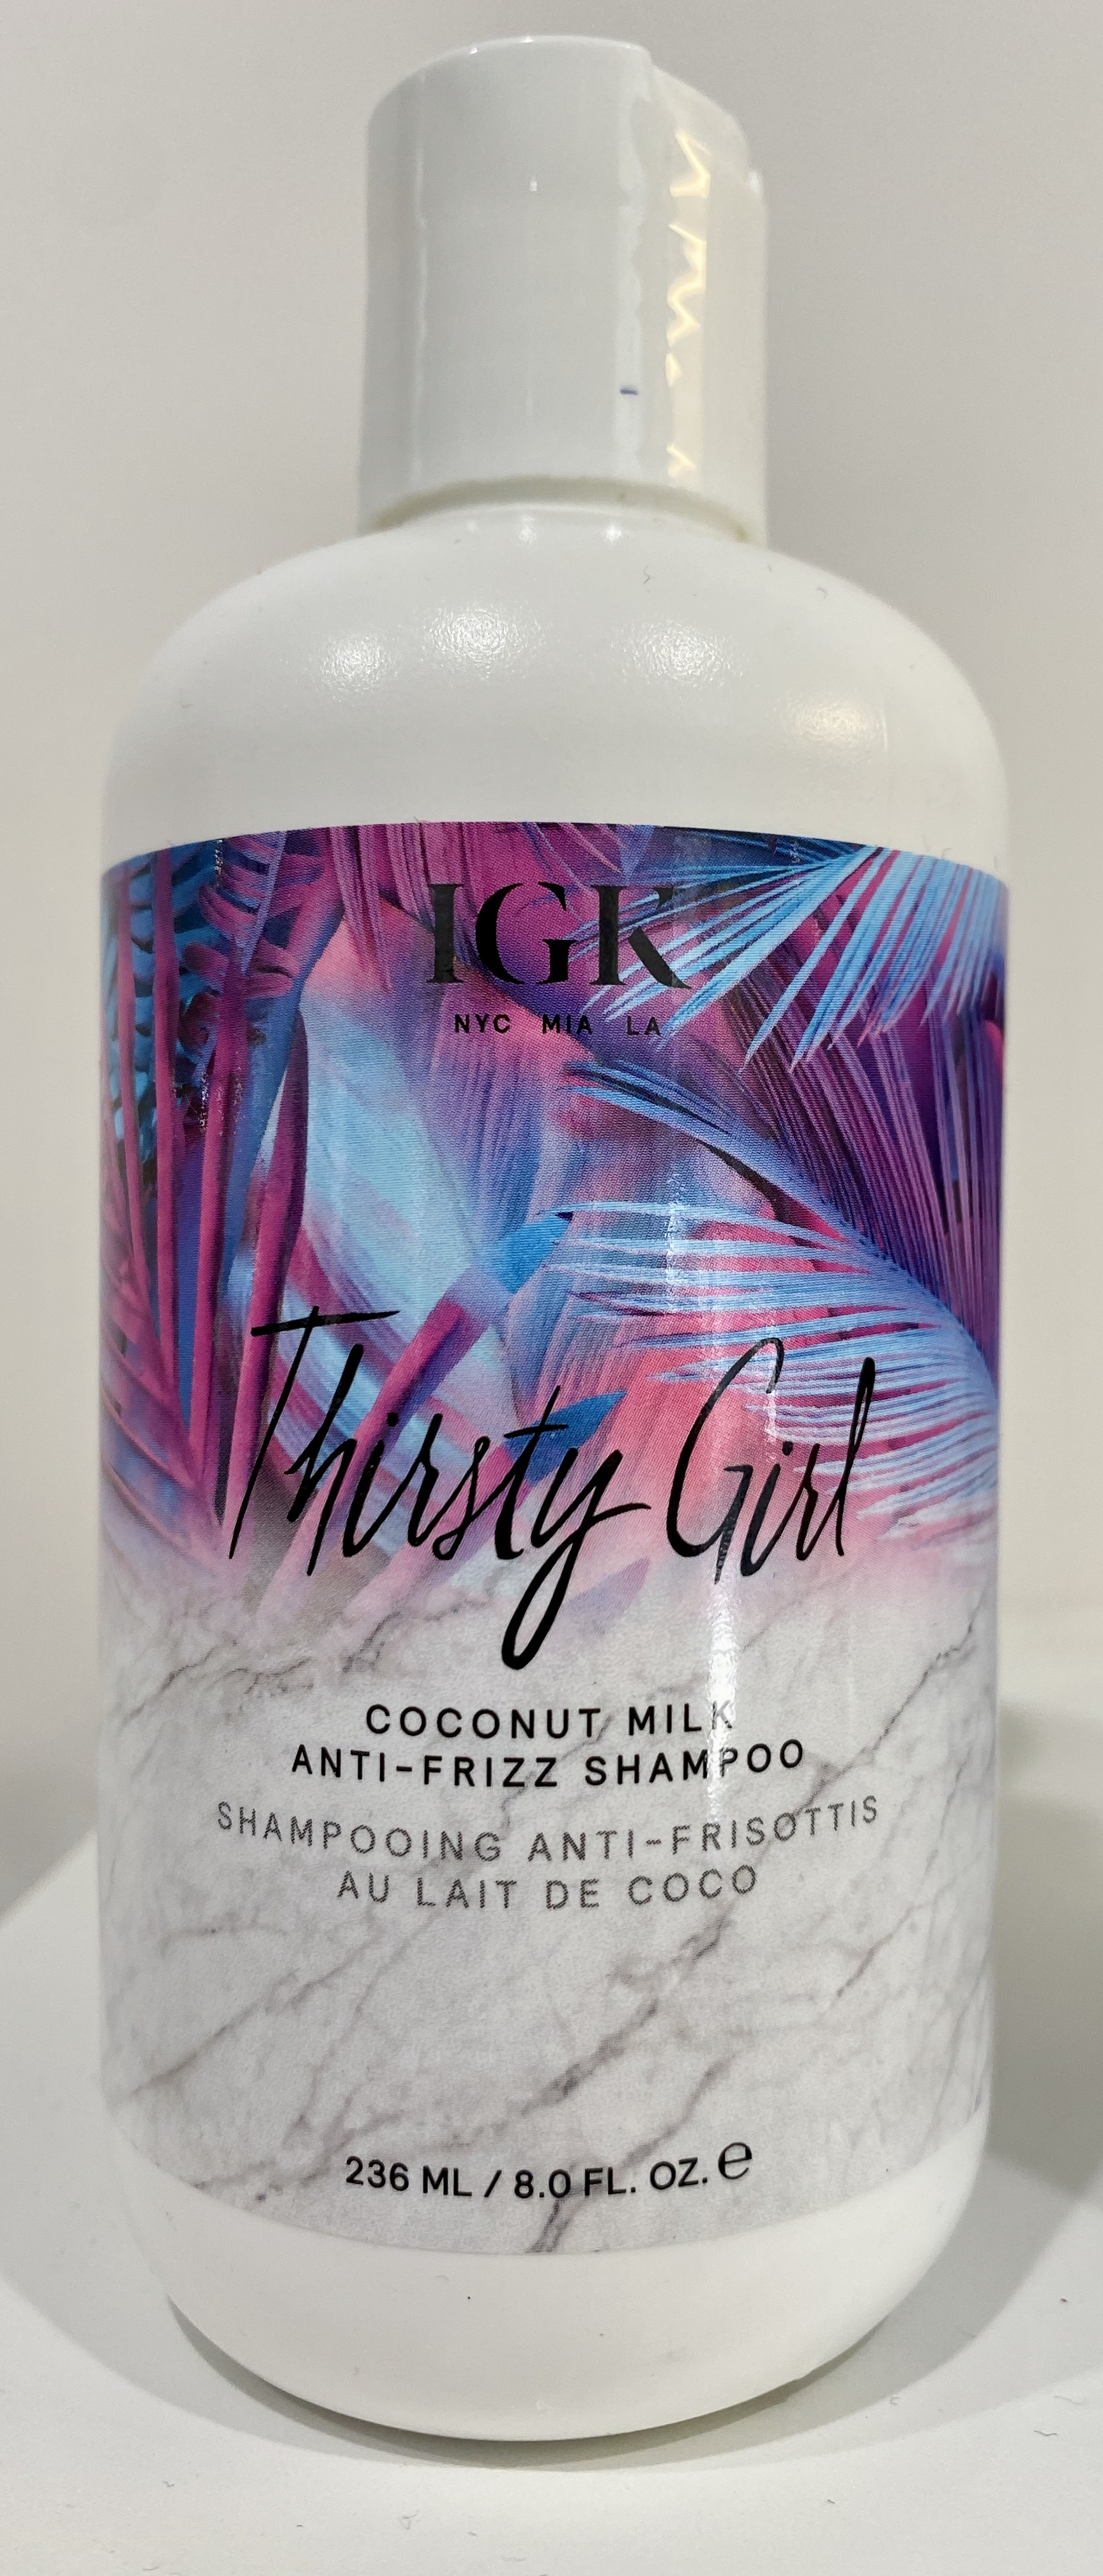 Thirsty Girl Shampoo